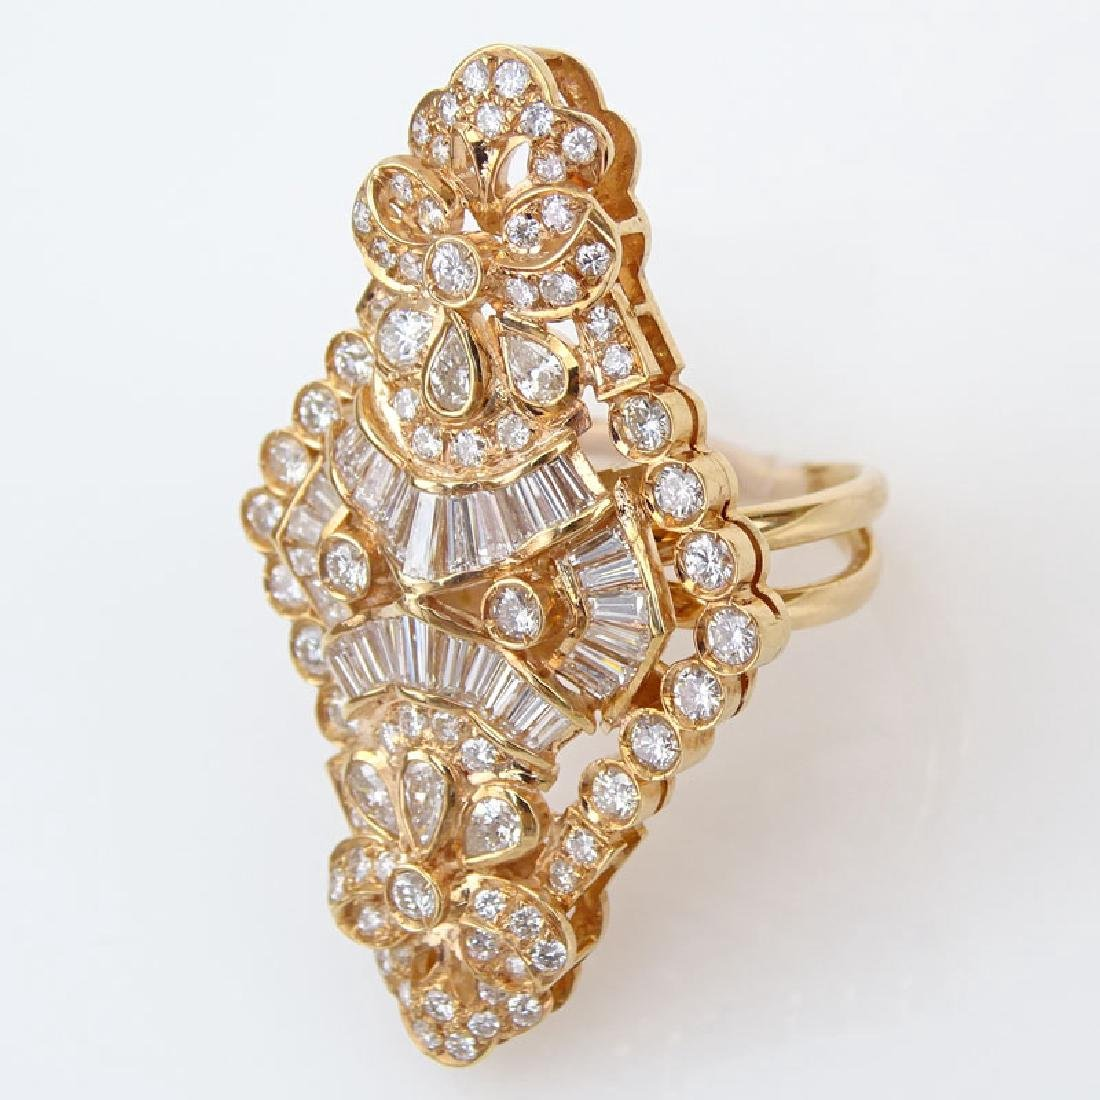 Approx. 4.0 Carat Round Brilliant, Tapered Baguette and